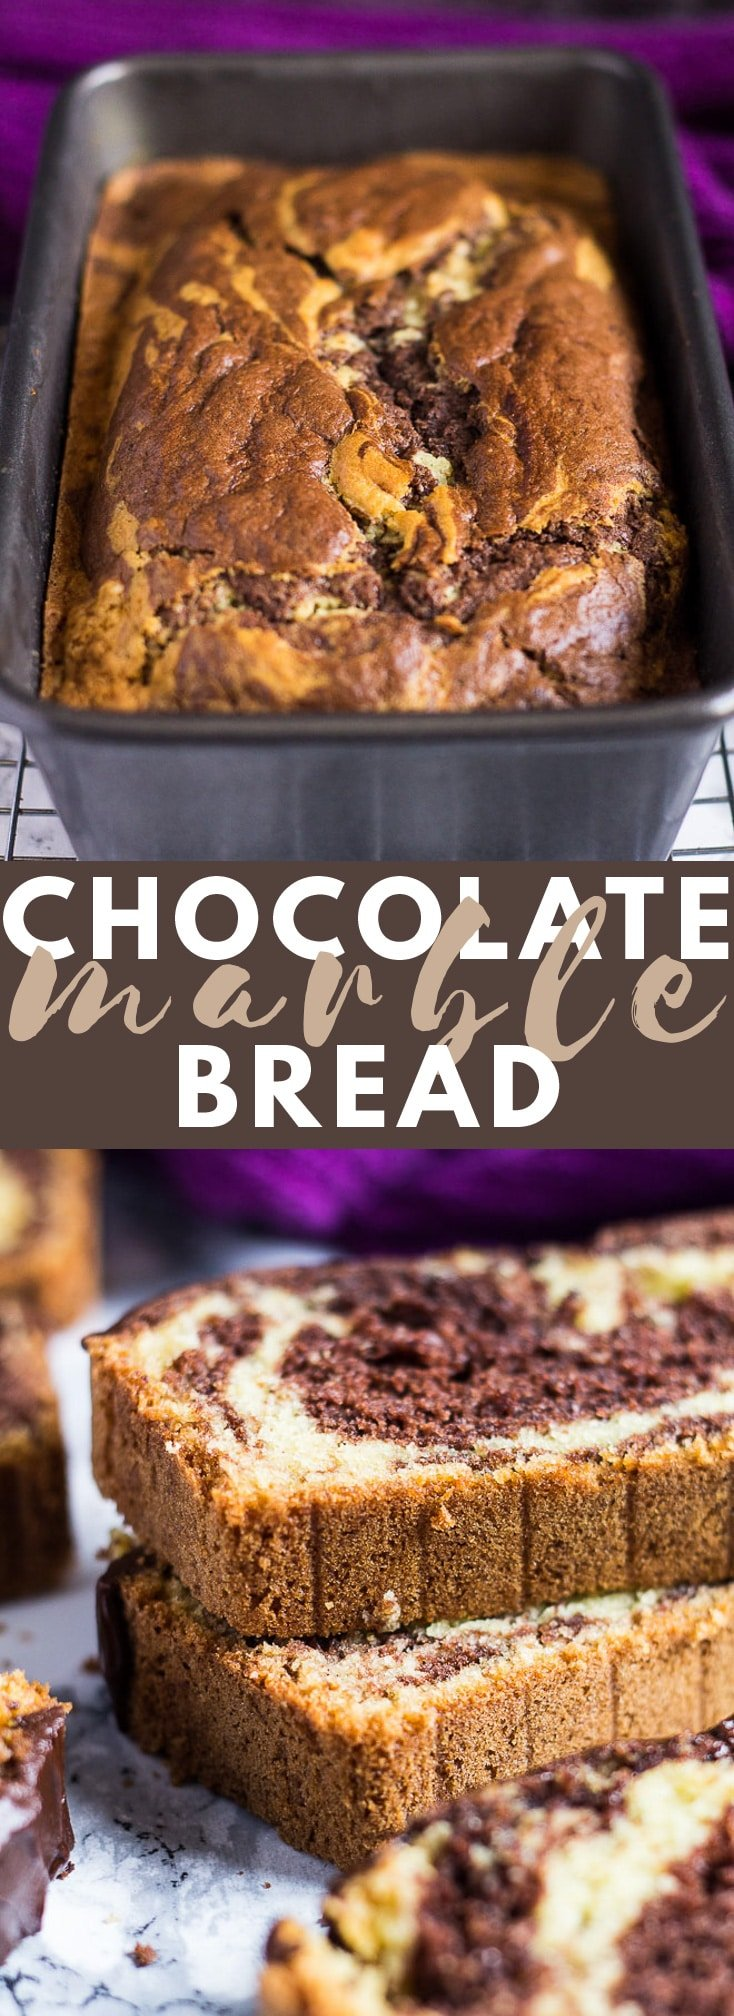 Chocolate Marble Bread - Deliciously moist and fluffy vanilla bread marbled with chocolate, and topped with chocolate ganache. Perfect for chocolate lovers! #chocolatebread #breadrecipes #cakerecipes